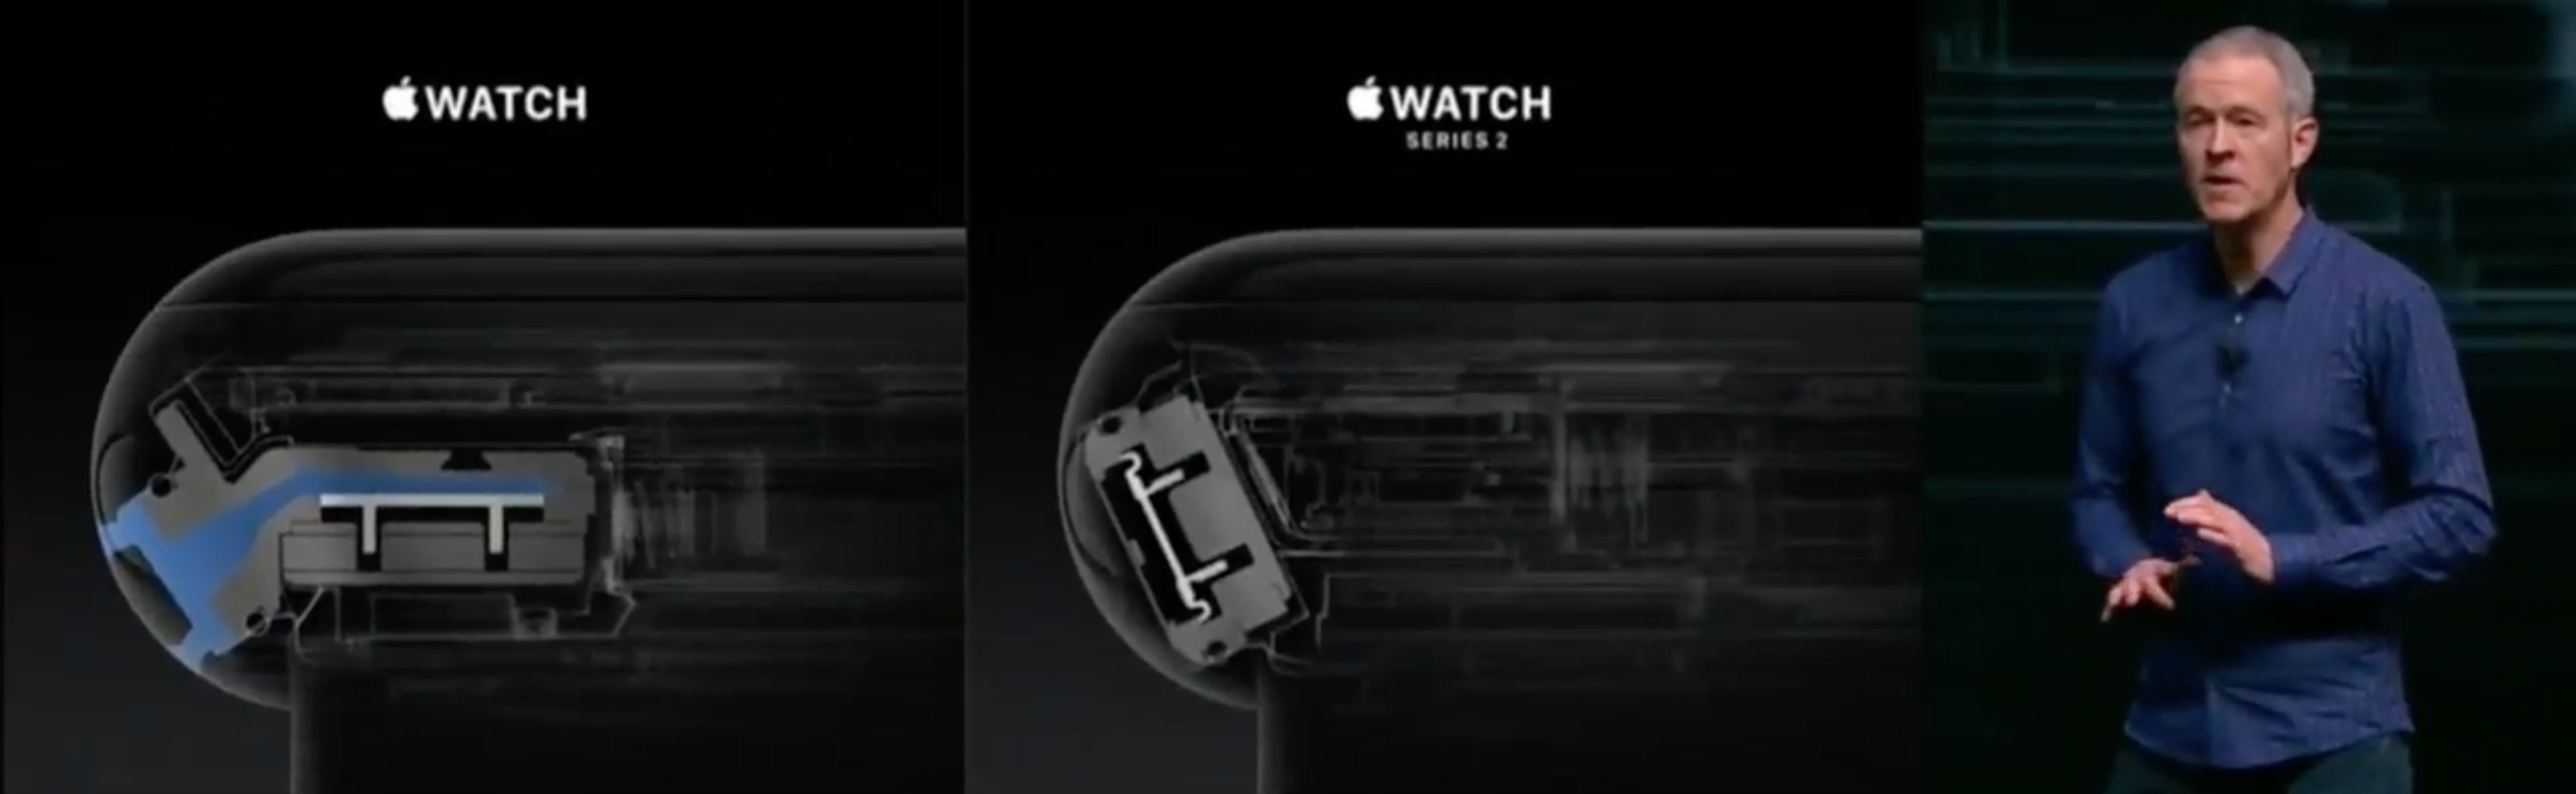 Here's How Apple Watch 2 Ejects Water from its Speaker | Inverse